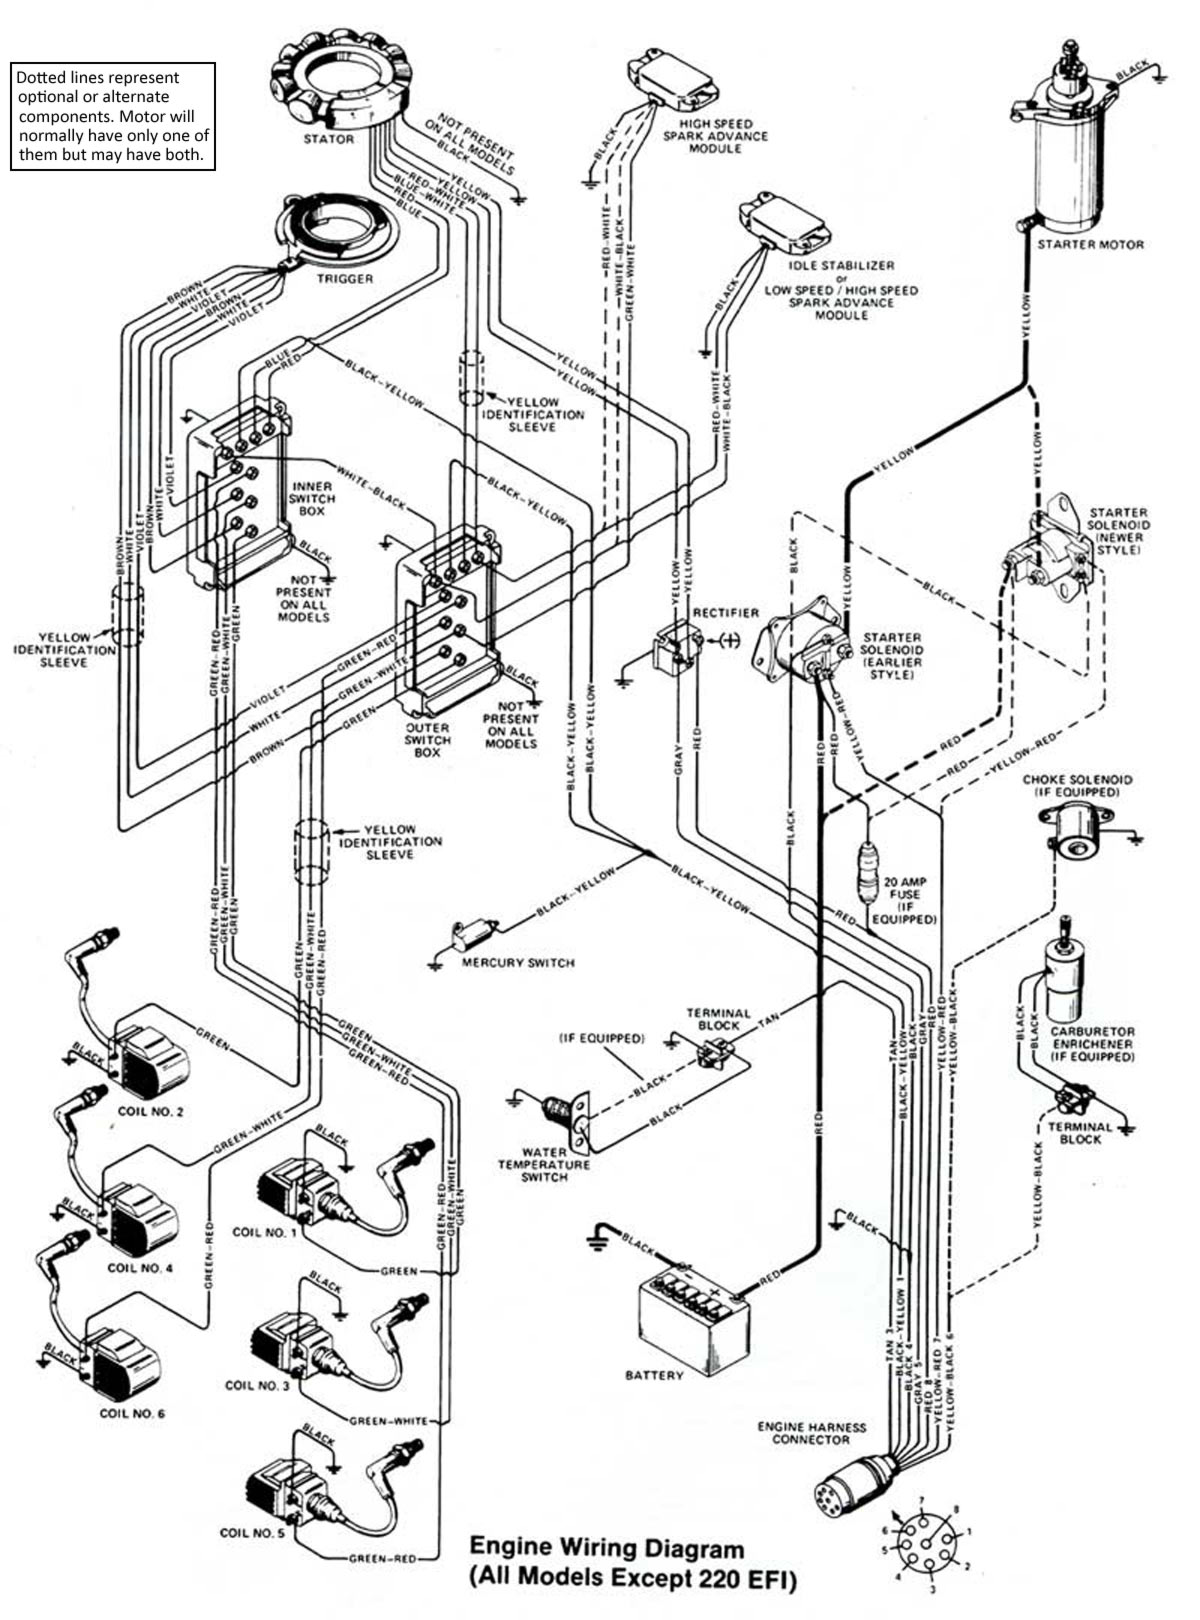 Mercury v6 outboard wiring diagram wiring diagram mercury 200 efi wiring diagram 1997 mercury 200 efi